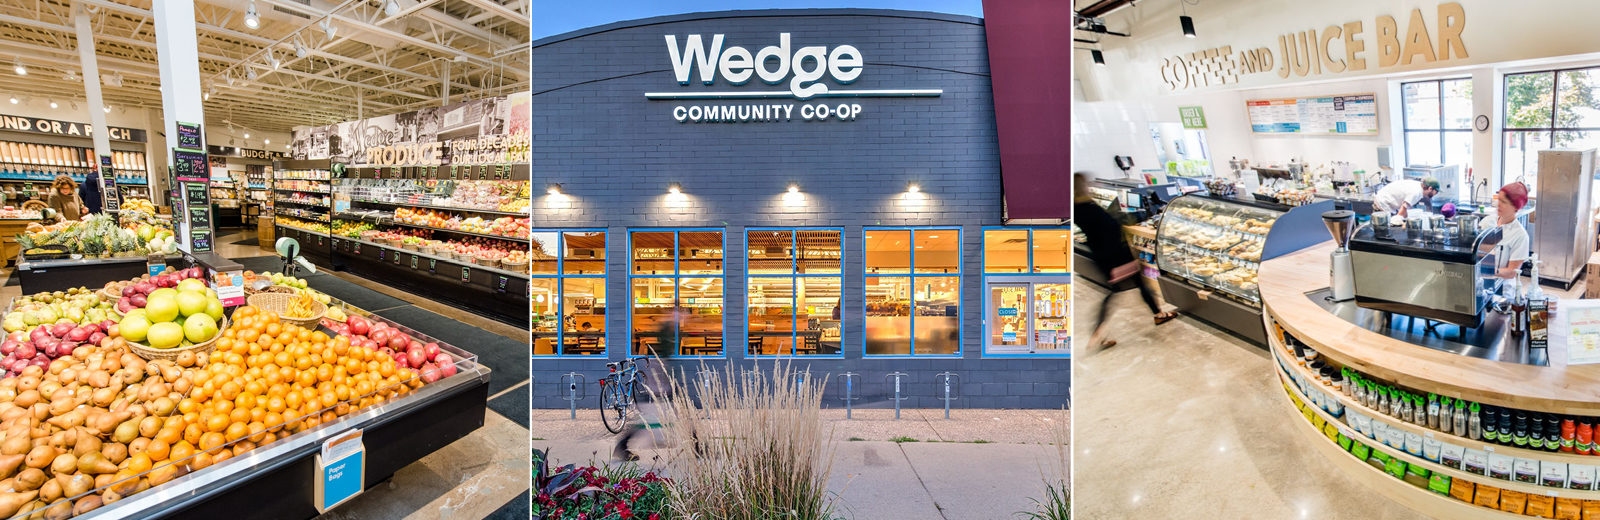 The Wedge Community Co-op store front and building interior